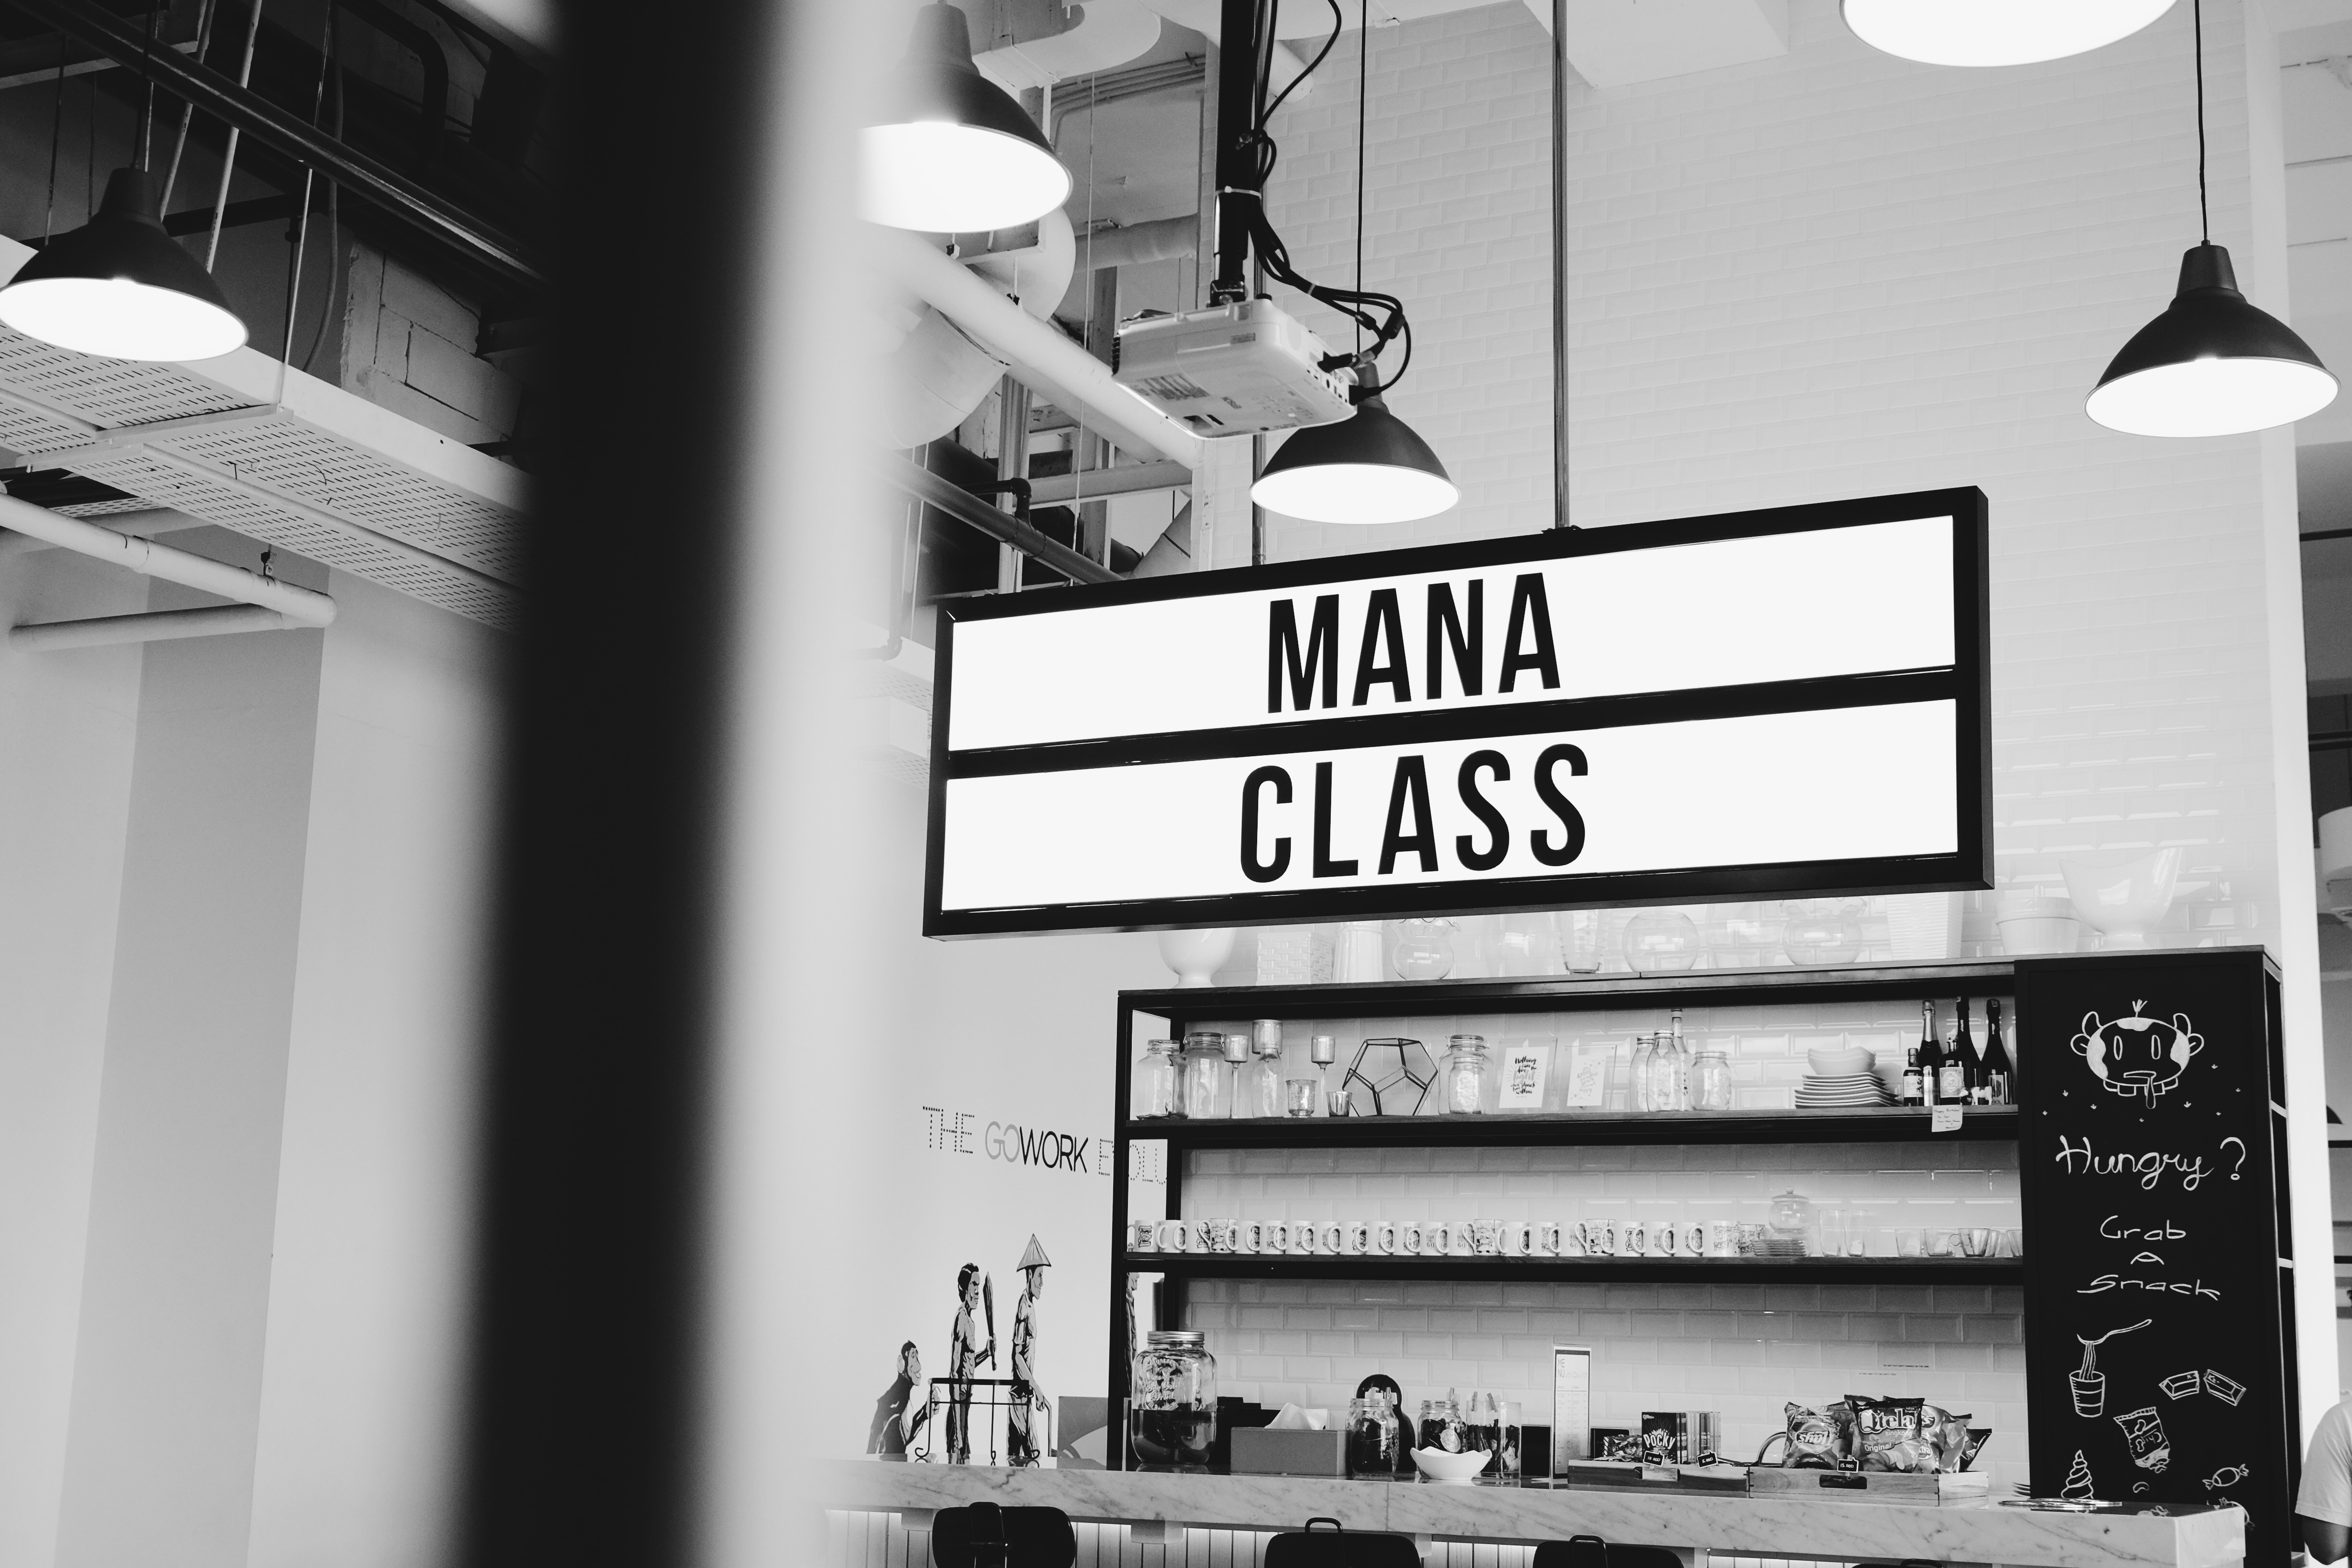 Mana Class at Gowork